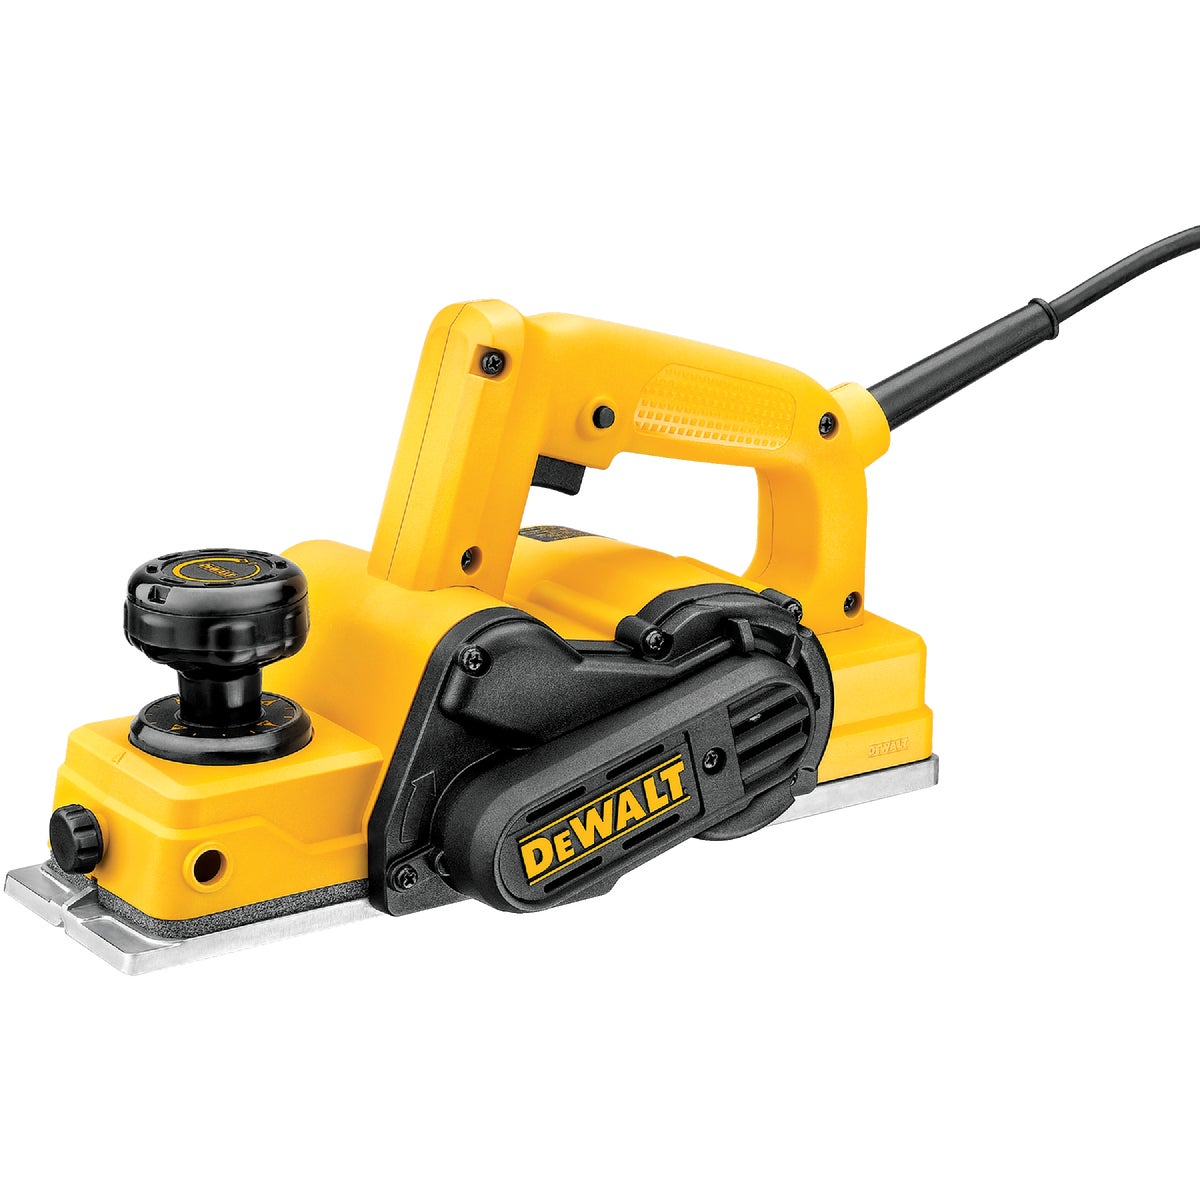 "3-1/4"" HP PLANER - D26676 by DeWalt"